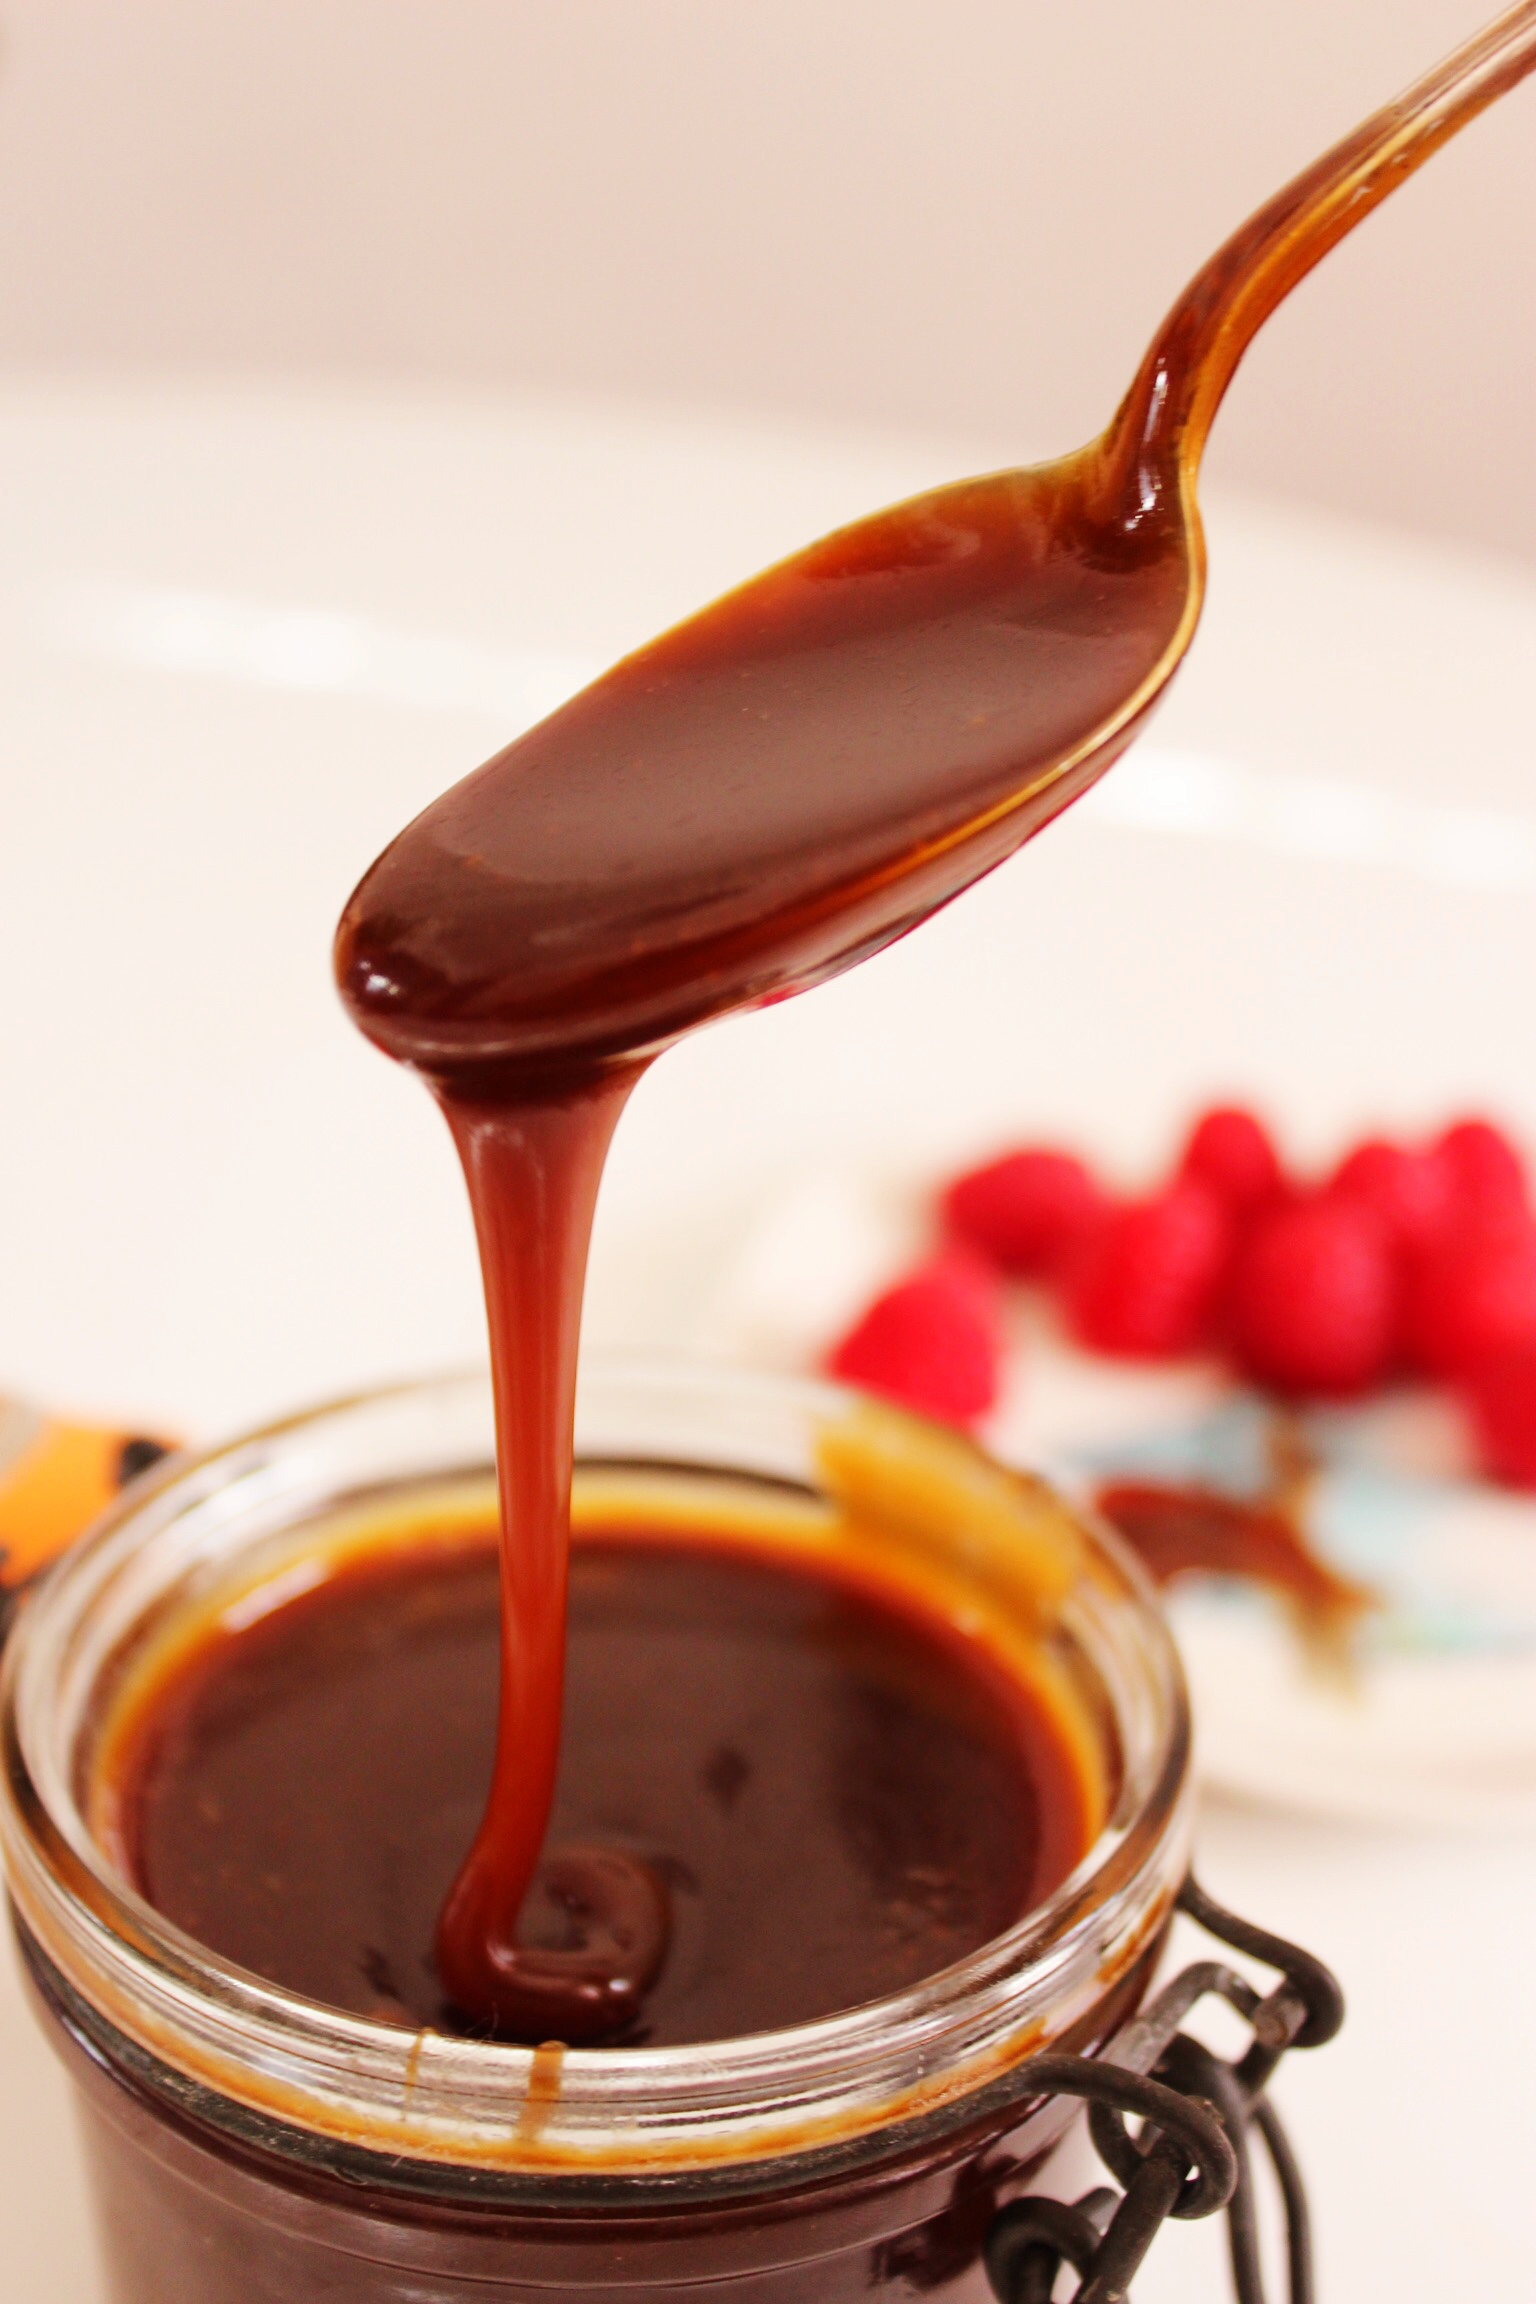 Salted Caramel Sauce - The Little Green Spoon